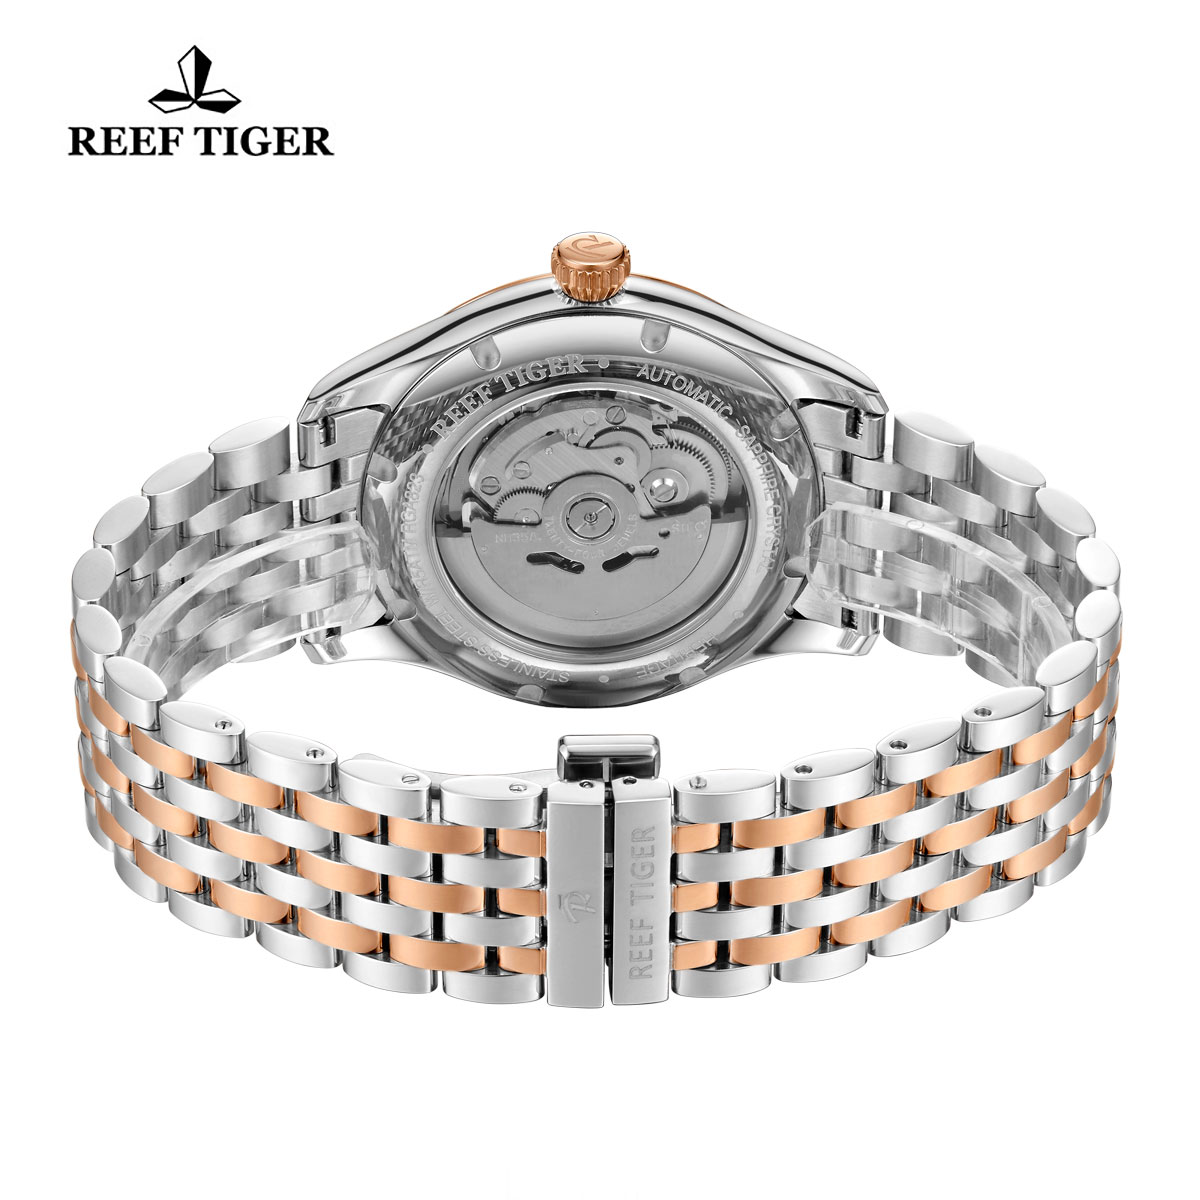 Reef Tiger Heritage II Dress Watch Automatic Blue Dial Two Tone Case RGA8232-PLT